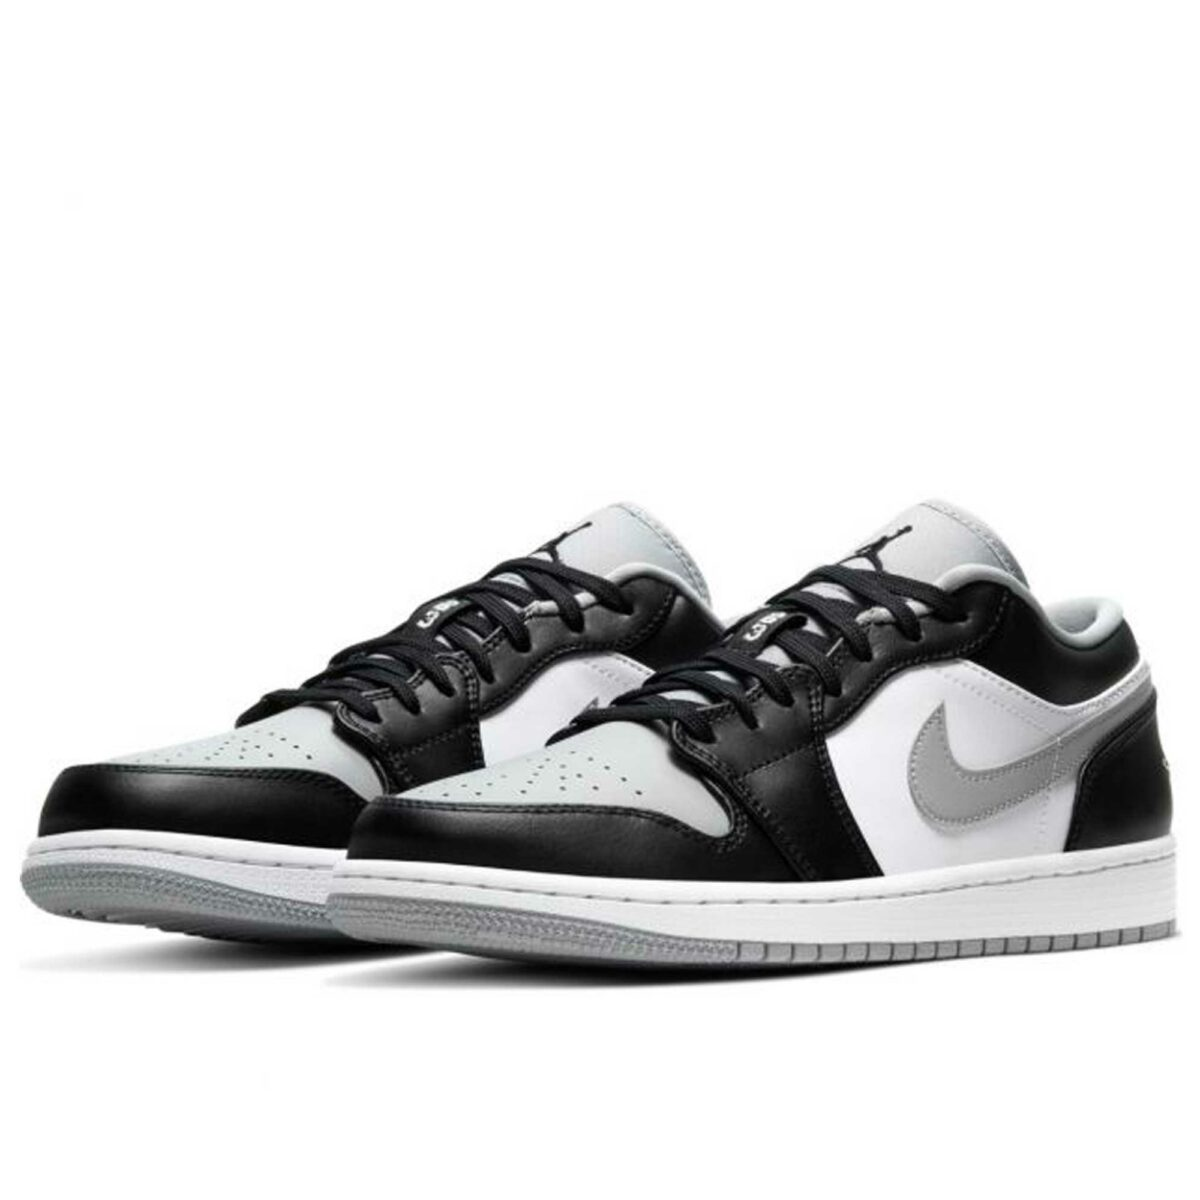 nike air Jordan 1 retro low black grey 553558_039 купить